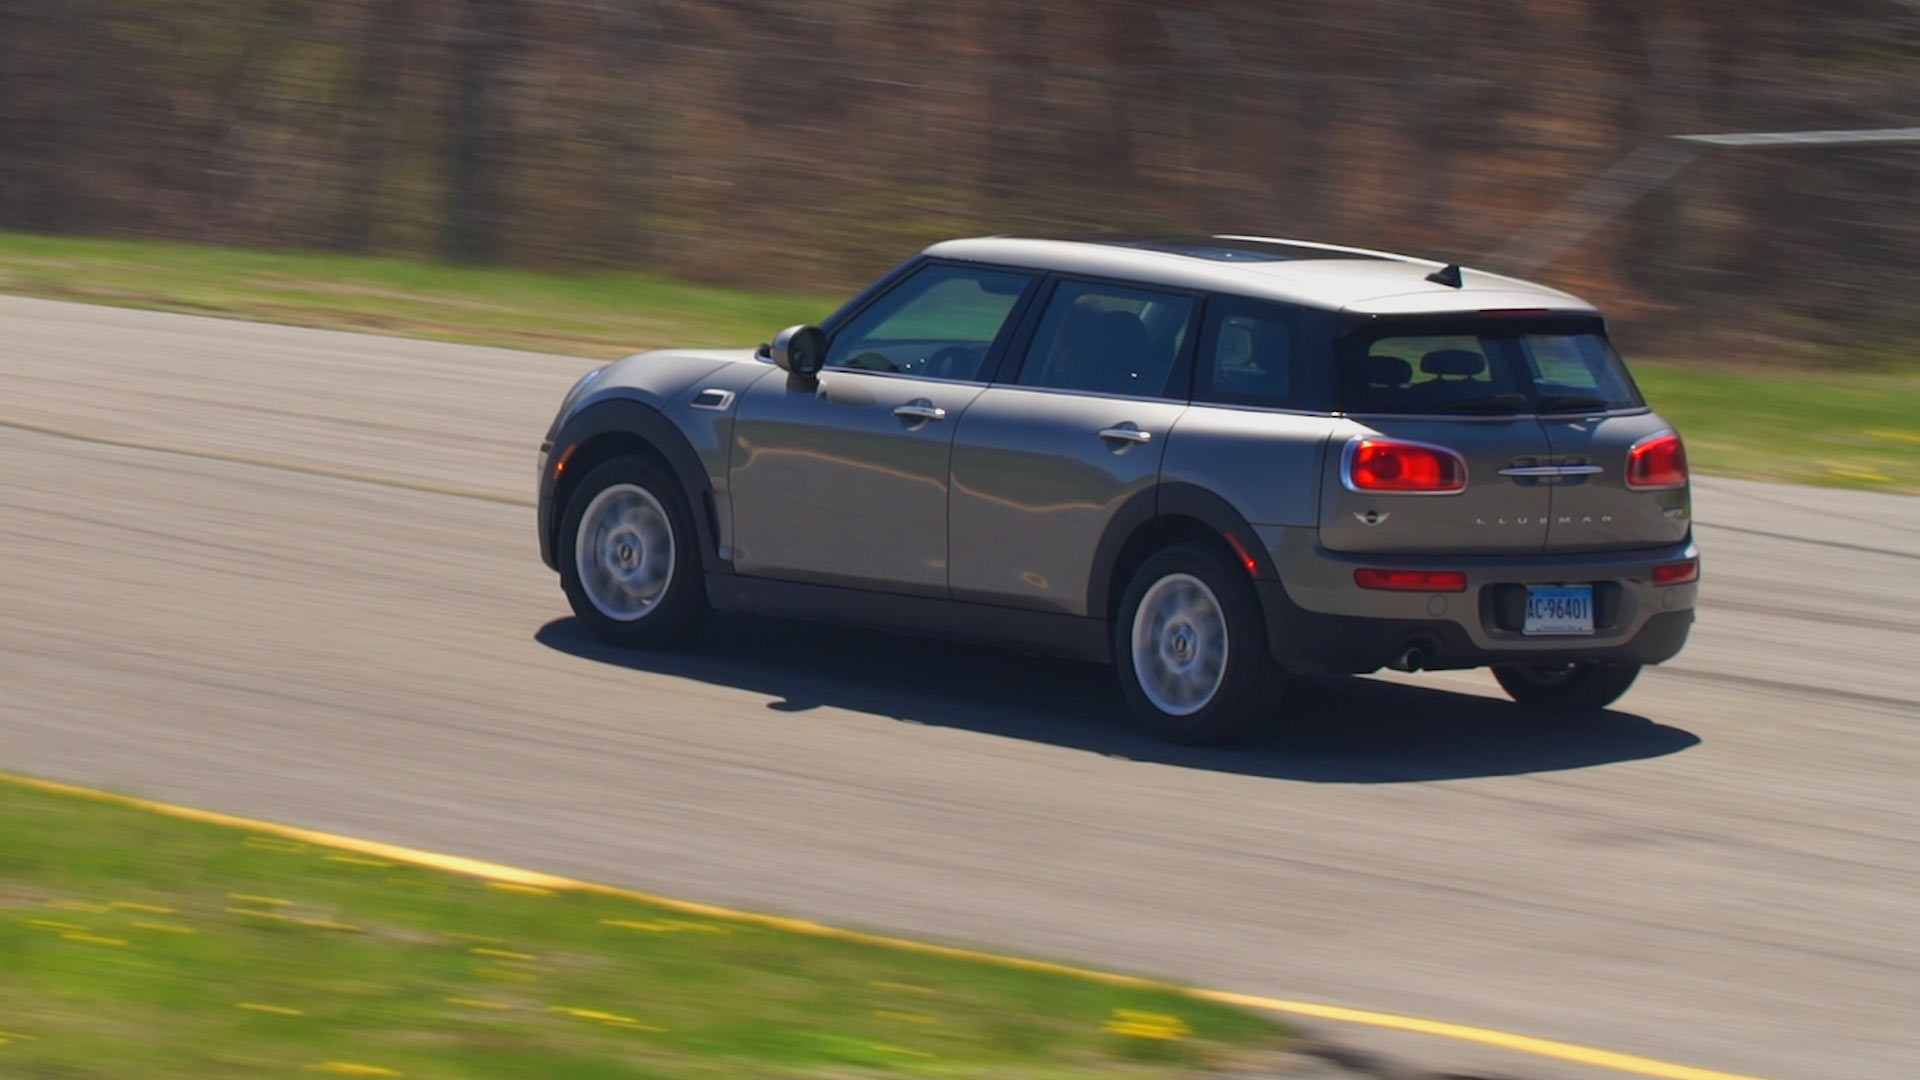 Baby cribs reviews consumer reports - The Largest Member Of The Mini Family The Clubman Retains The Brand S Fun And Funky 2016 Mini Cooper Clubman Review